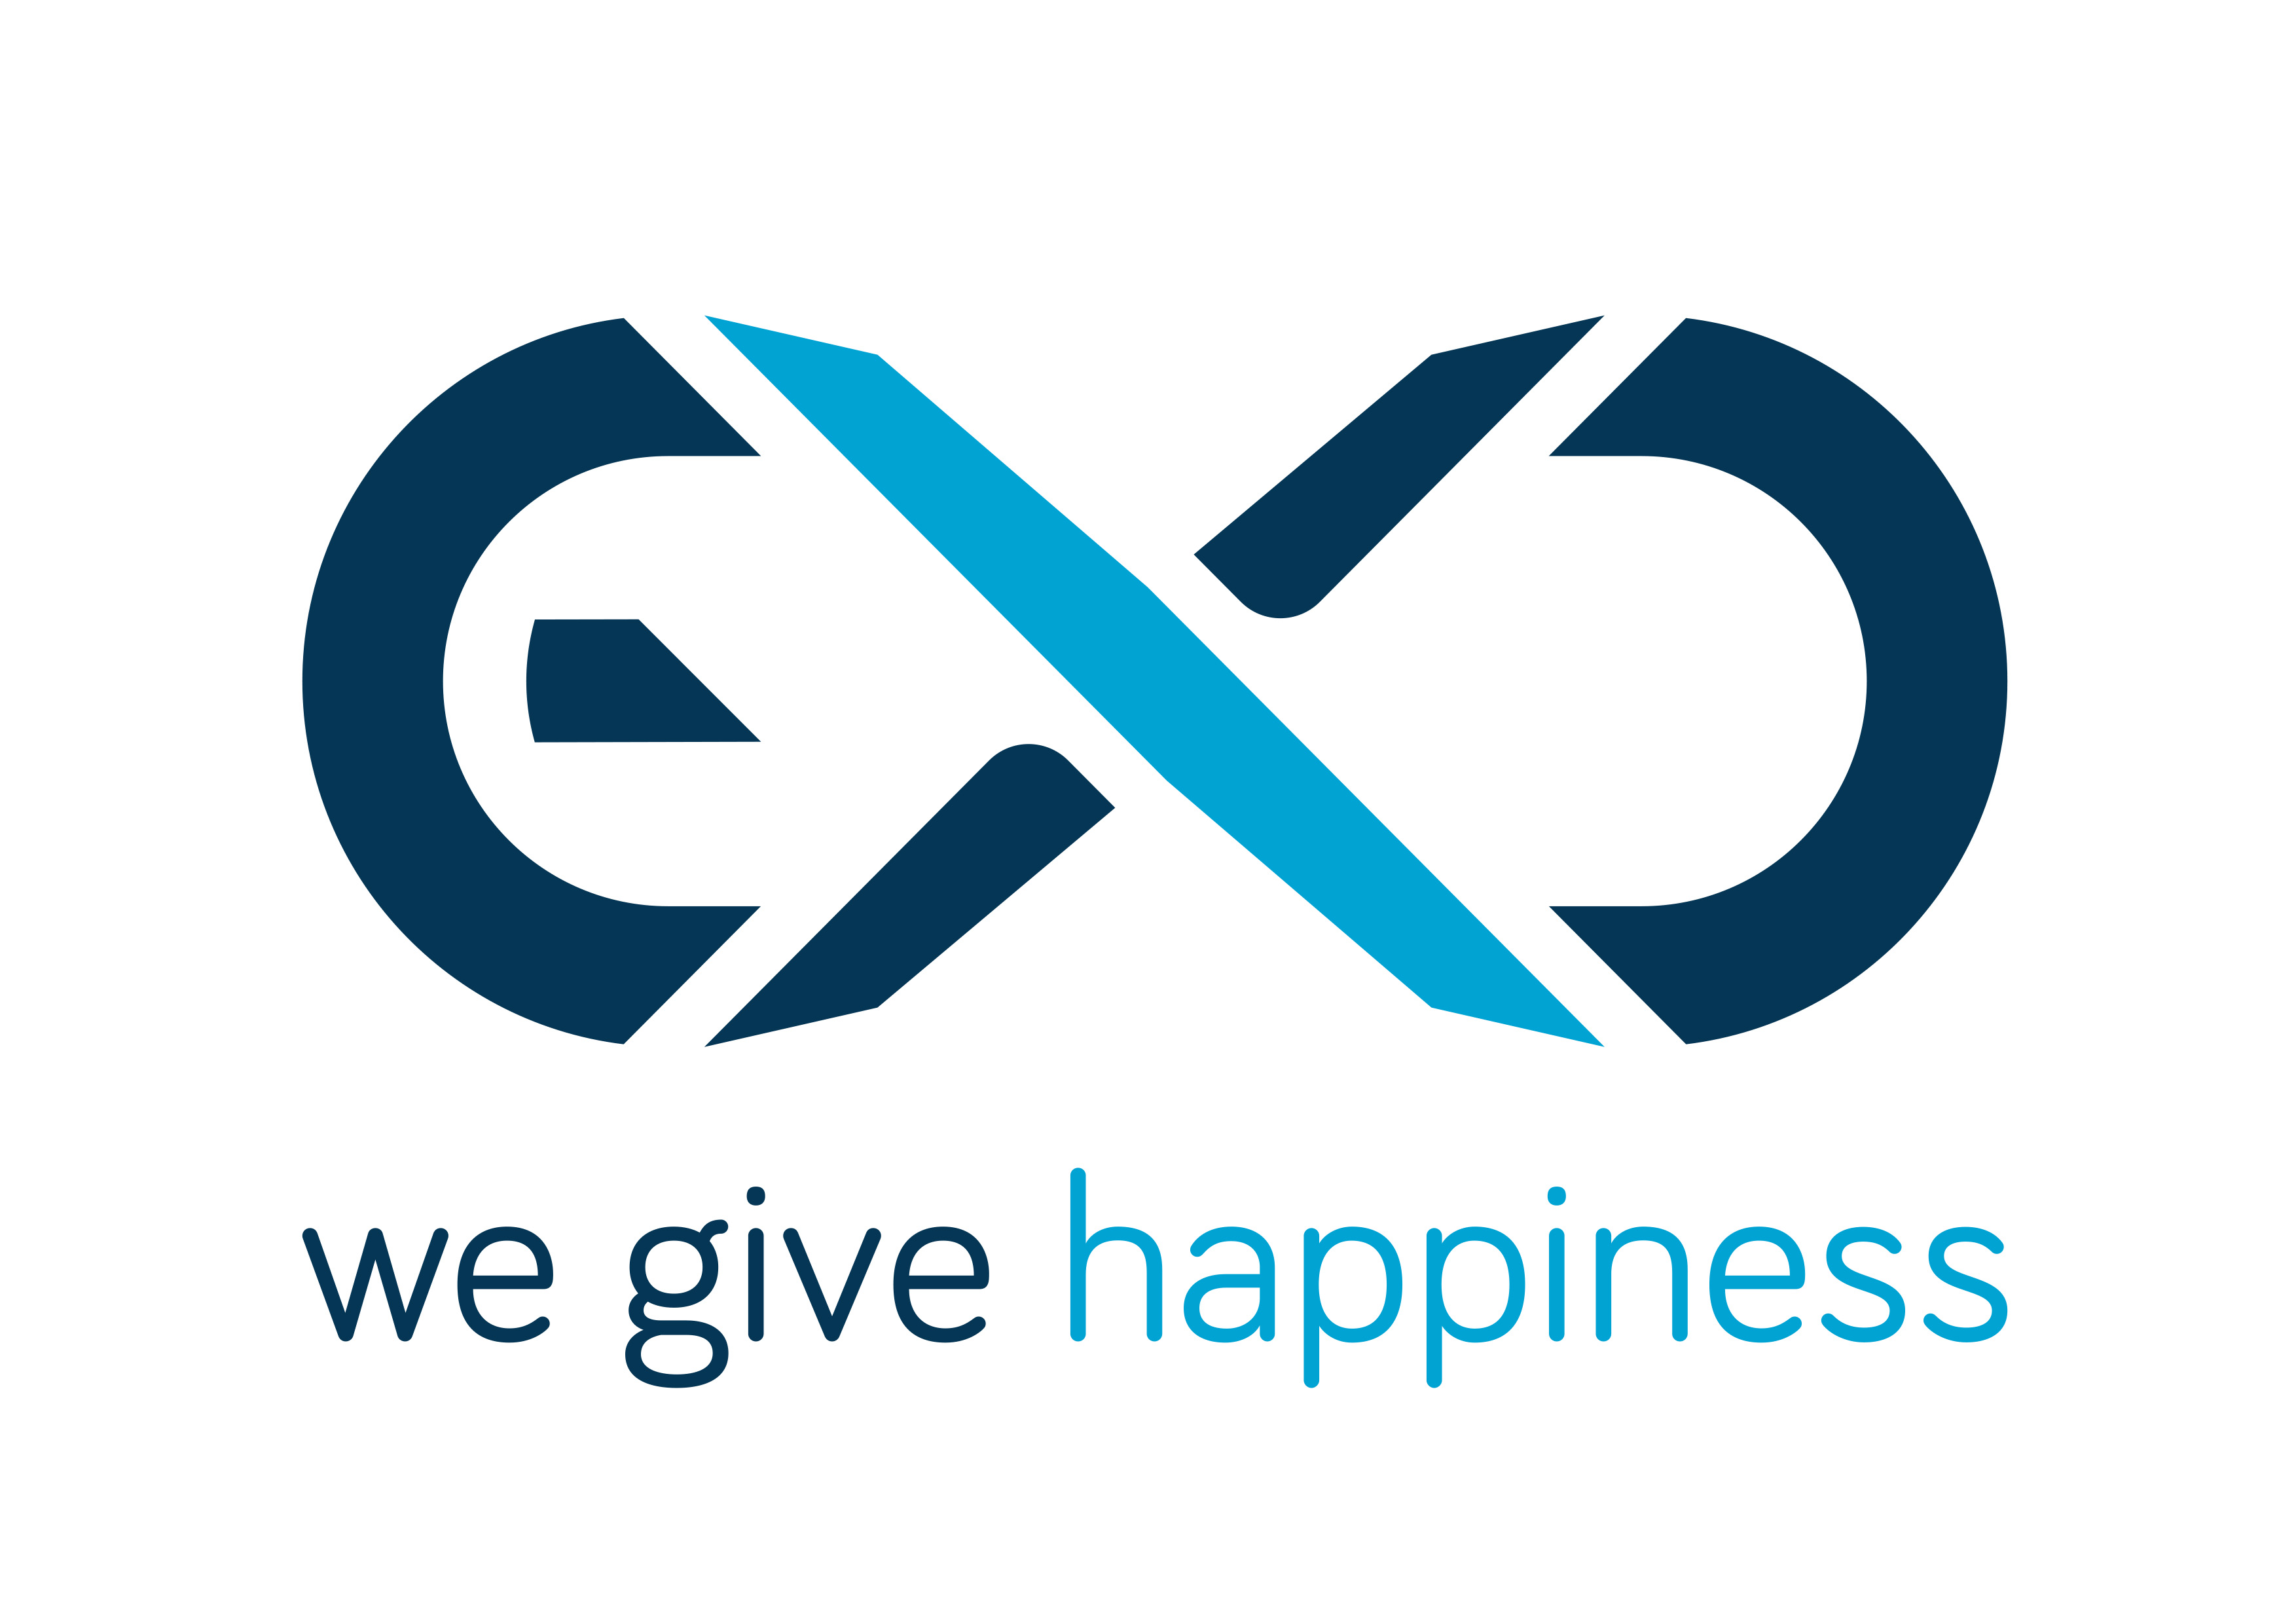 eXc-we-give-happiness